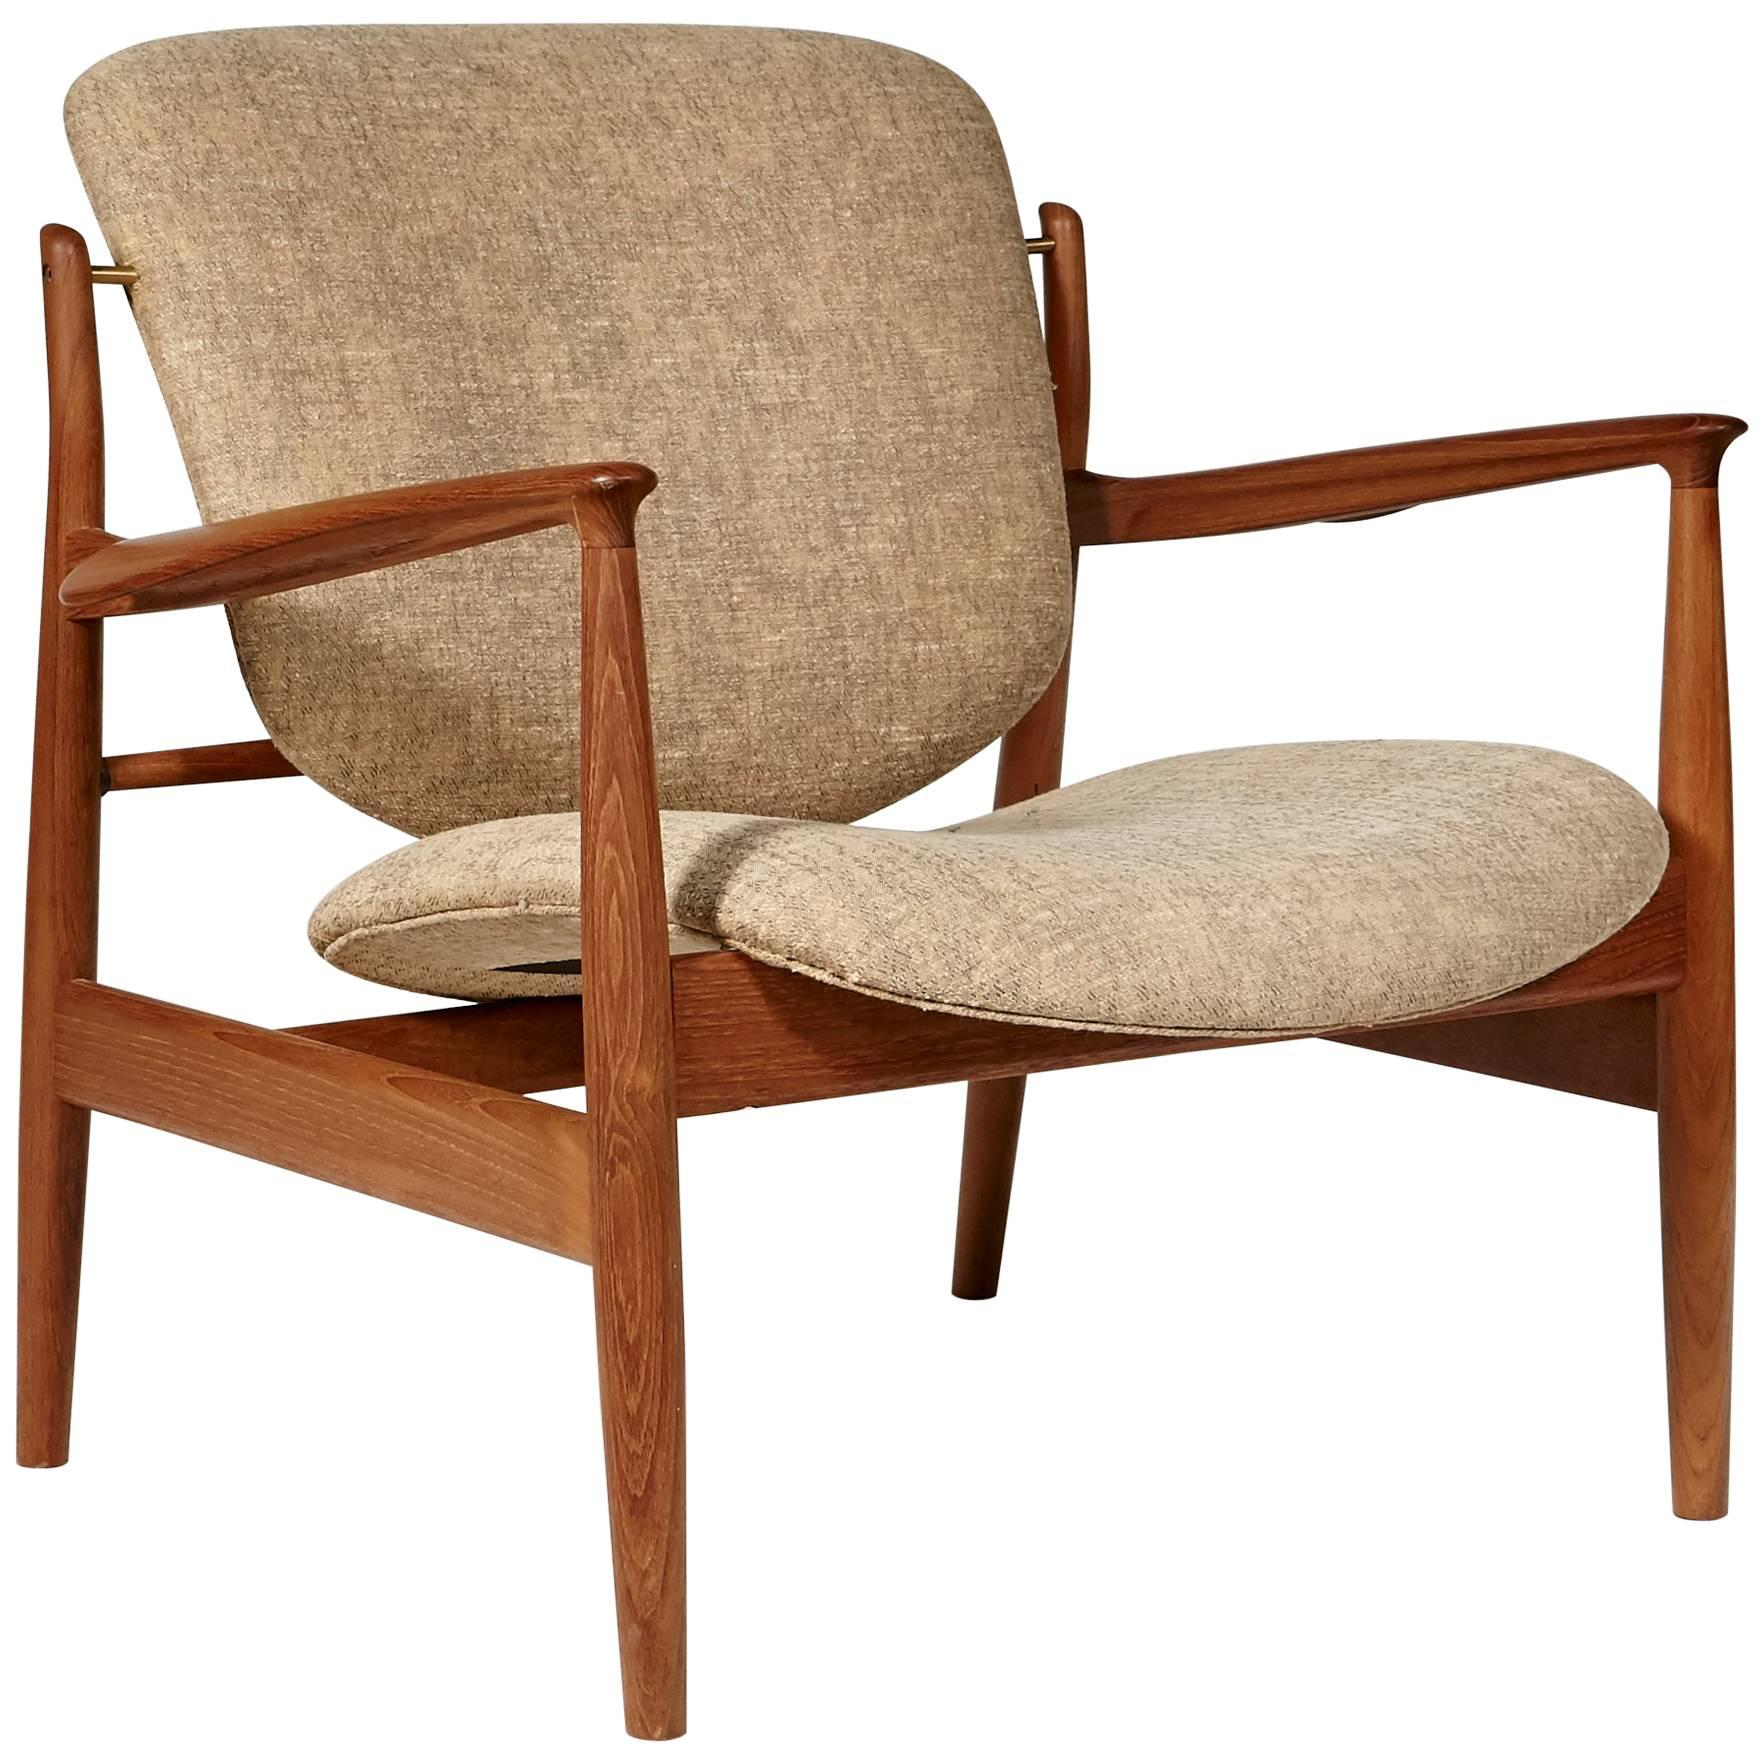 Finn Juhl Teak Danish Lounge Chair Model FD 136, 1950s For Sale At 1stdibs